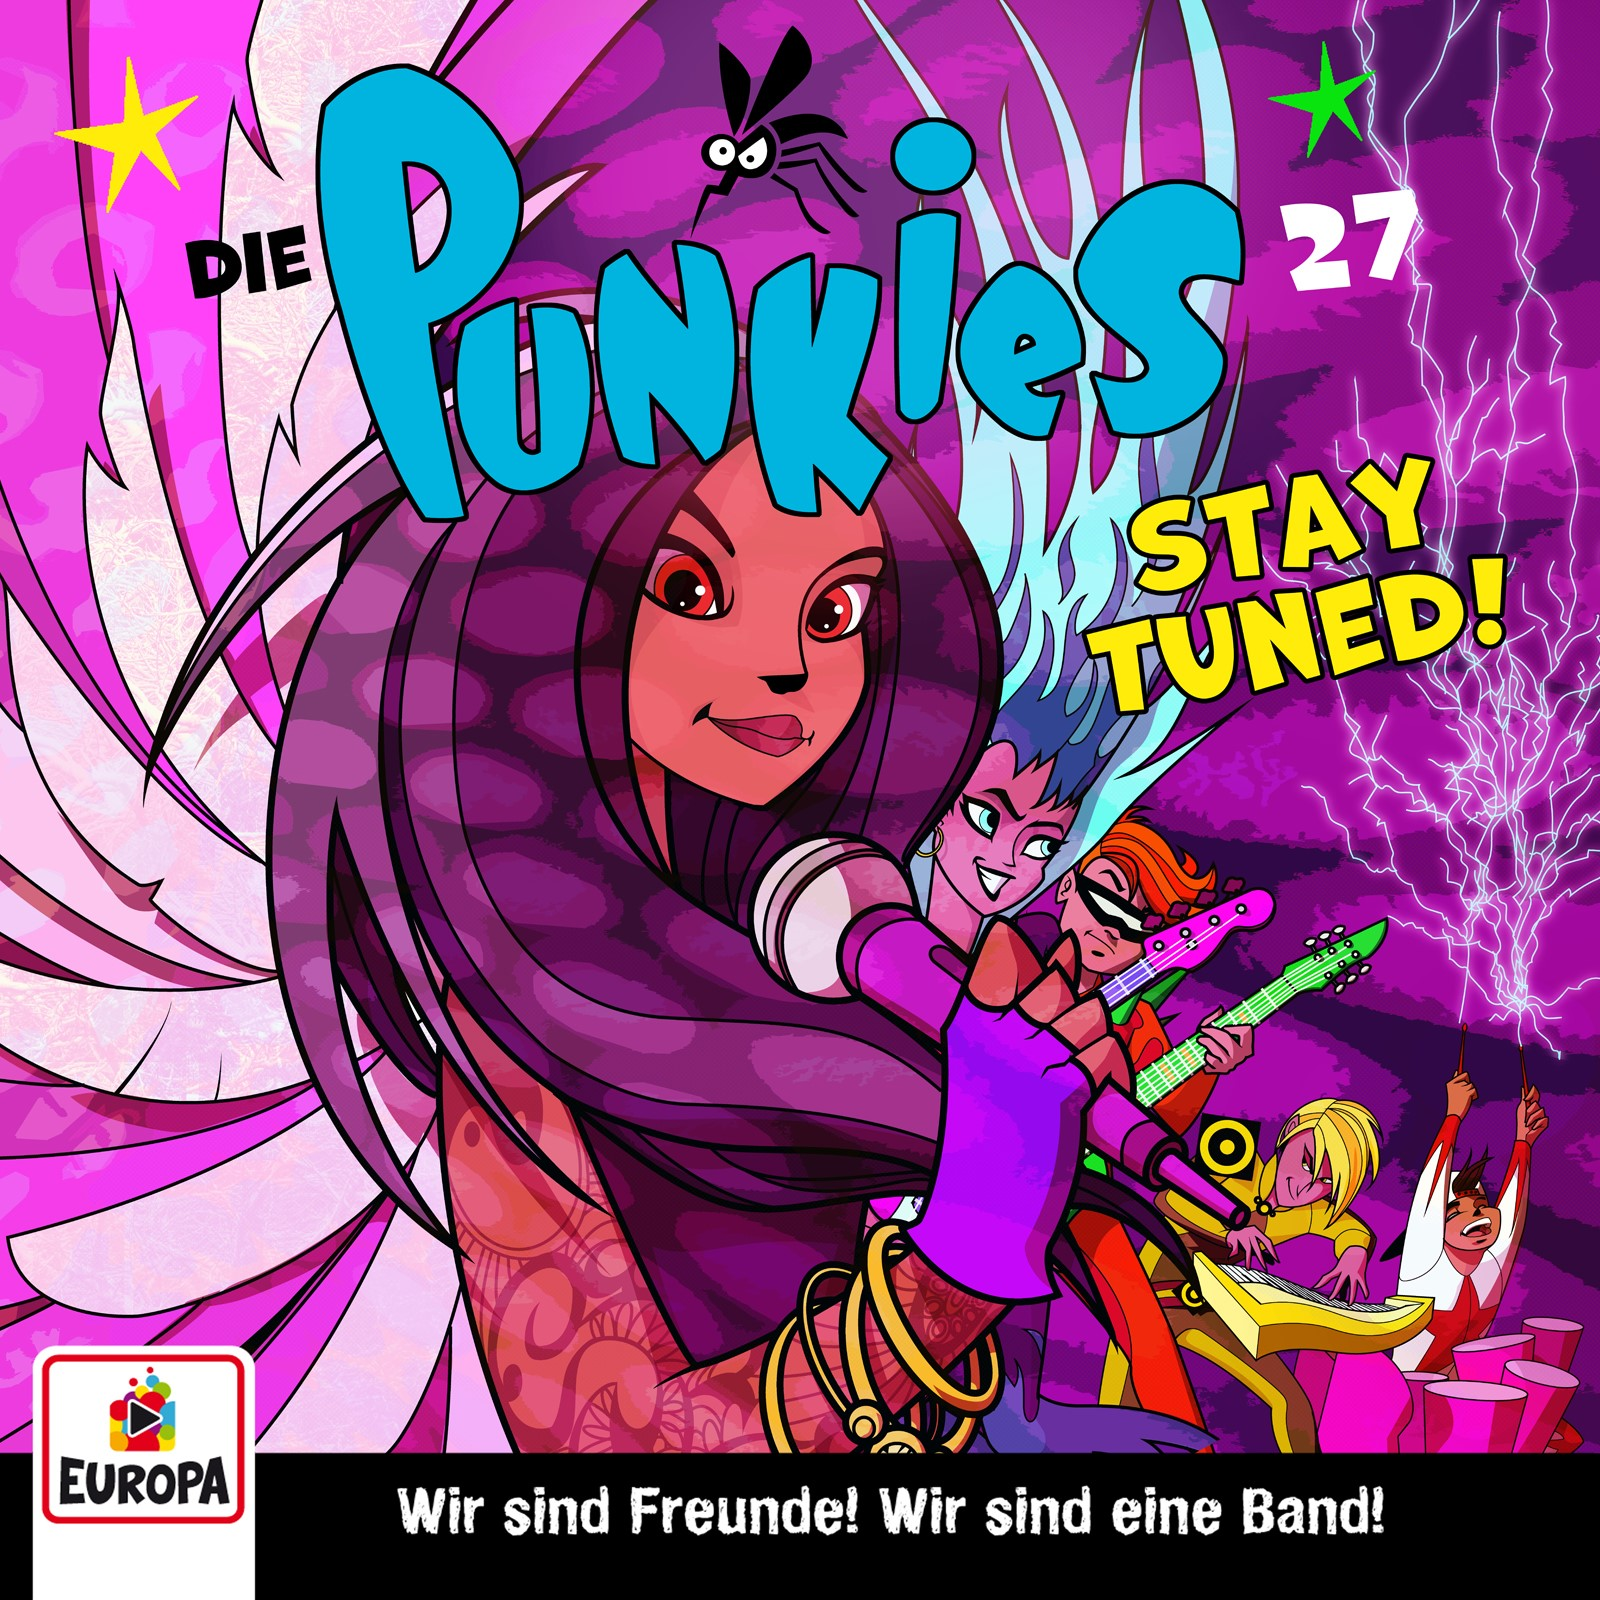 Die Punkies  - Stay tuned!